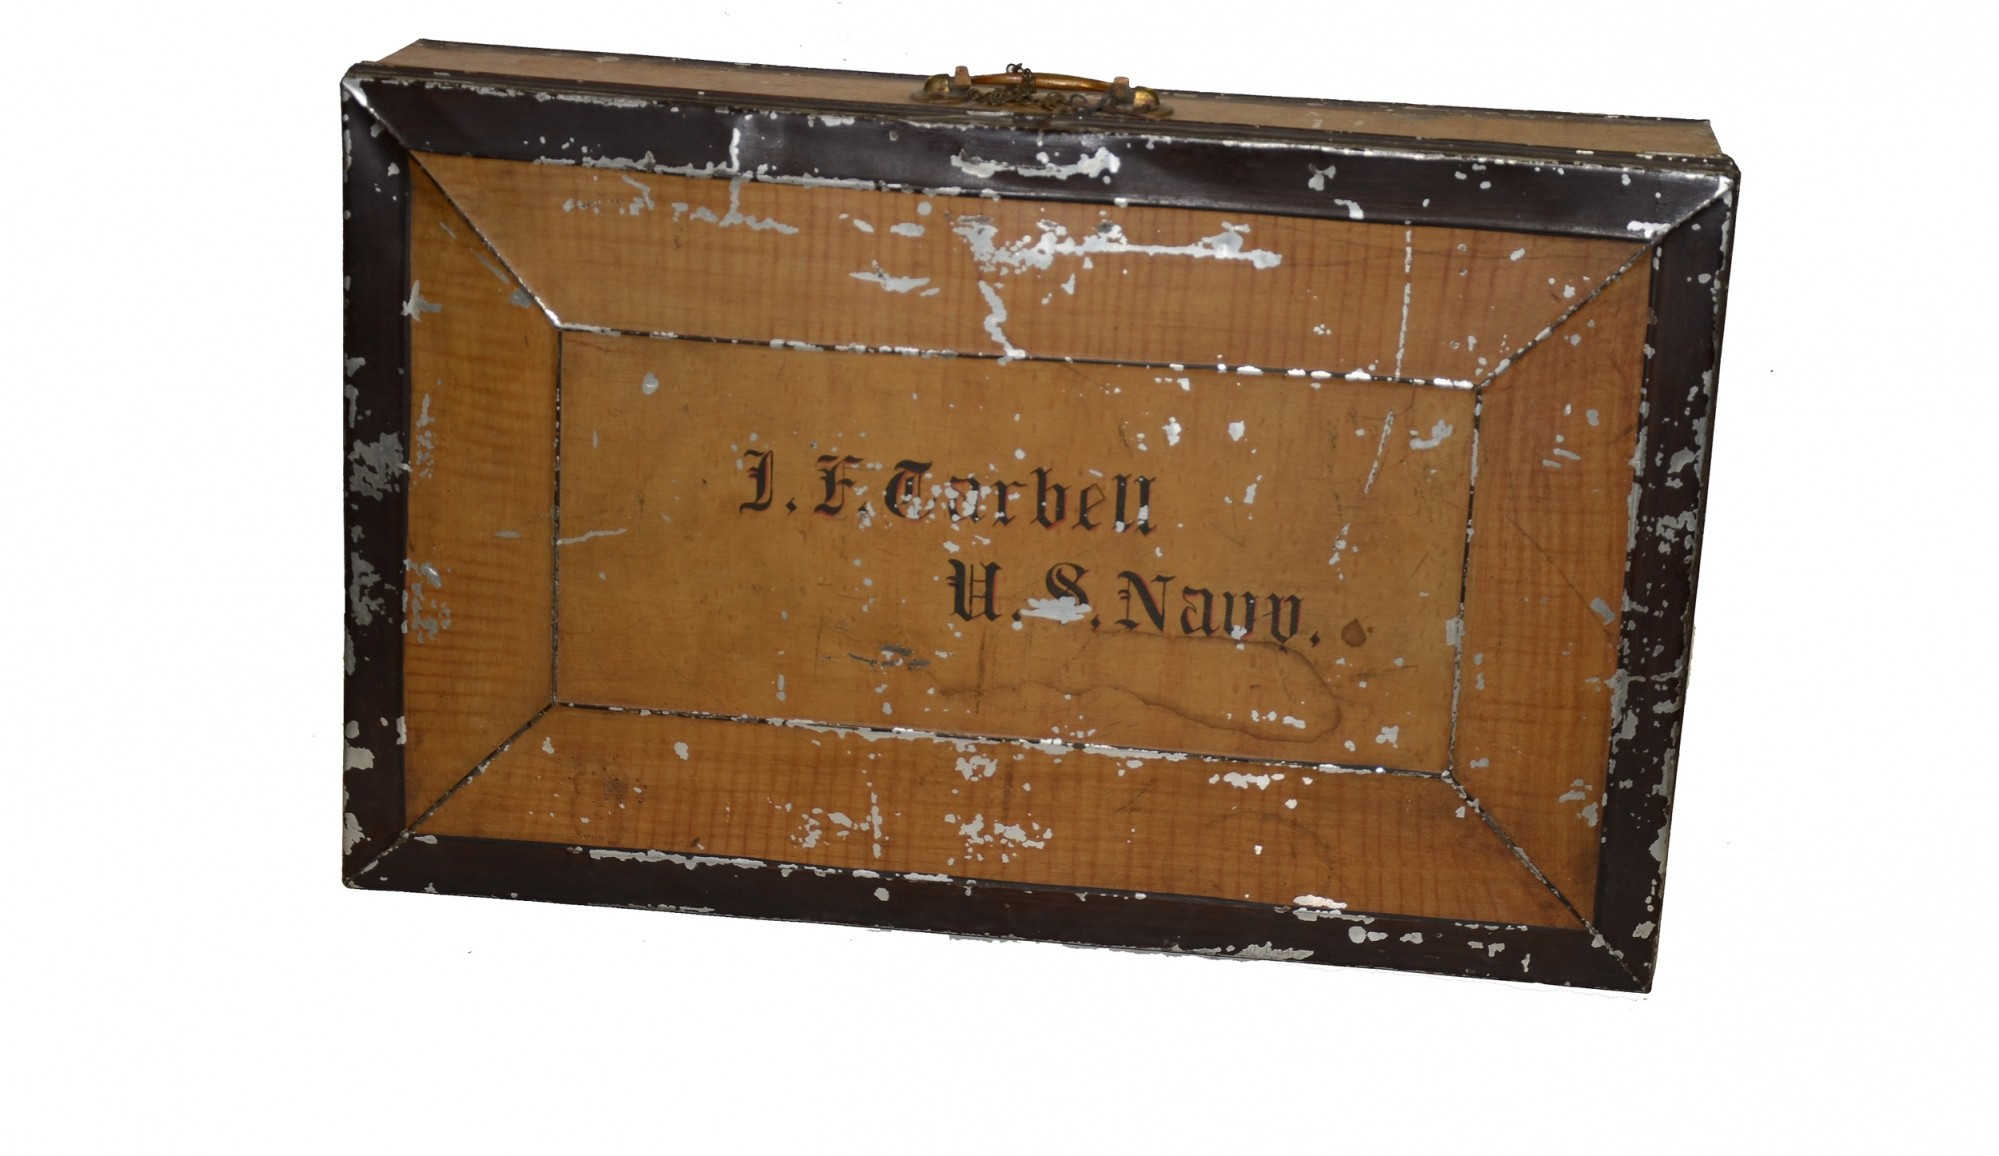 US NAVY TOLE SUITCASE IDENTIFIED TO CIVIL WAR PAYMASTER